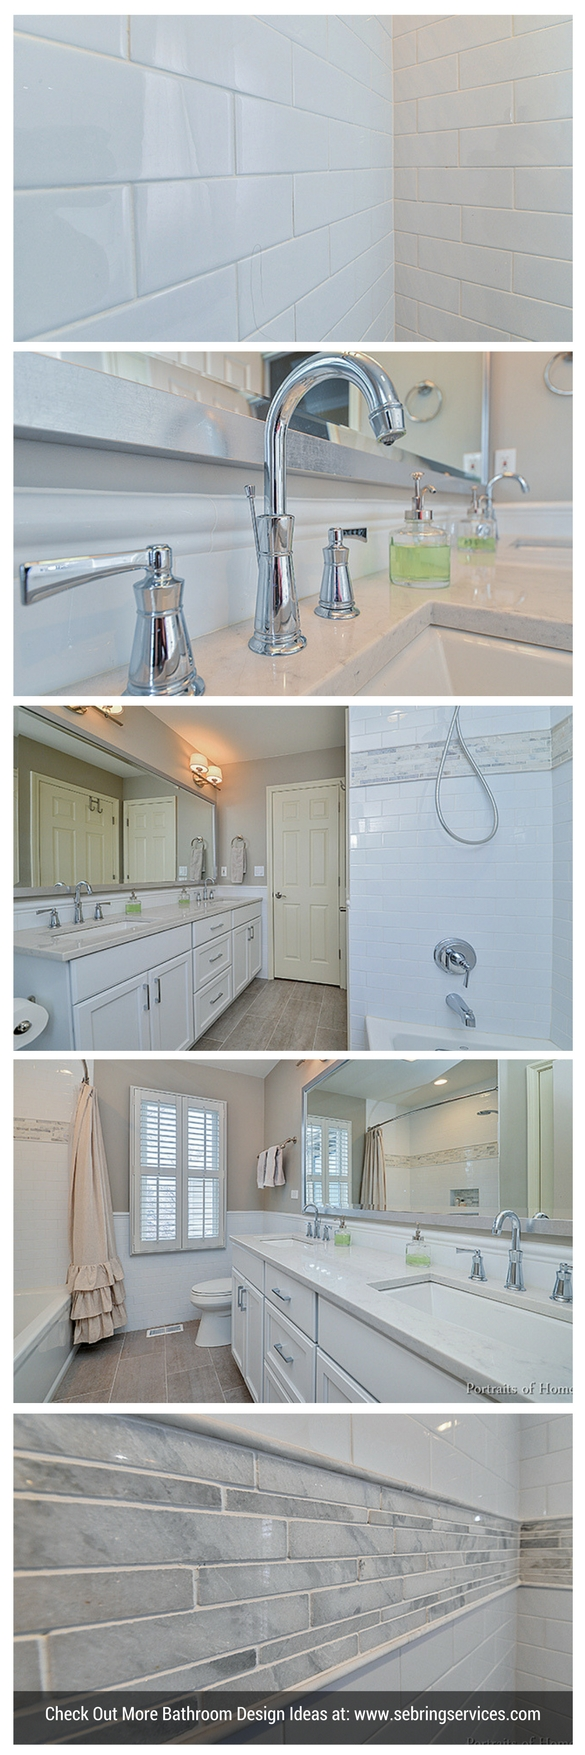 Carl & Susan's Hall Bathroom Remodel Pictures  Transitional Style Mesmerizing Bathroom Remodeling Naperville Decorating Inspiration